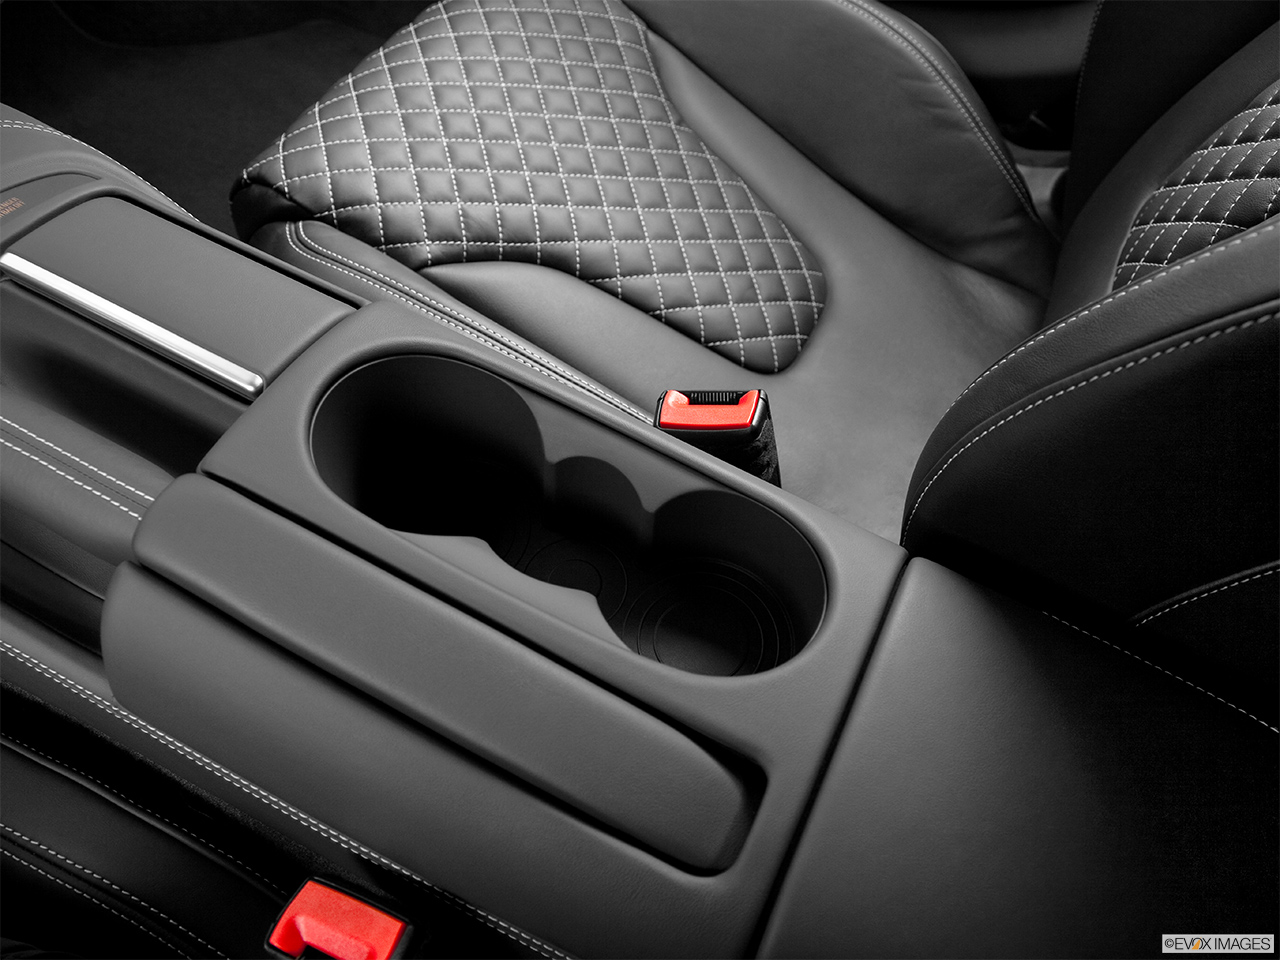 2014 Audi R8 Coupe Automatic Quattro V10 Plus Cup Holders